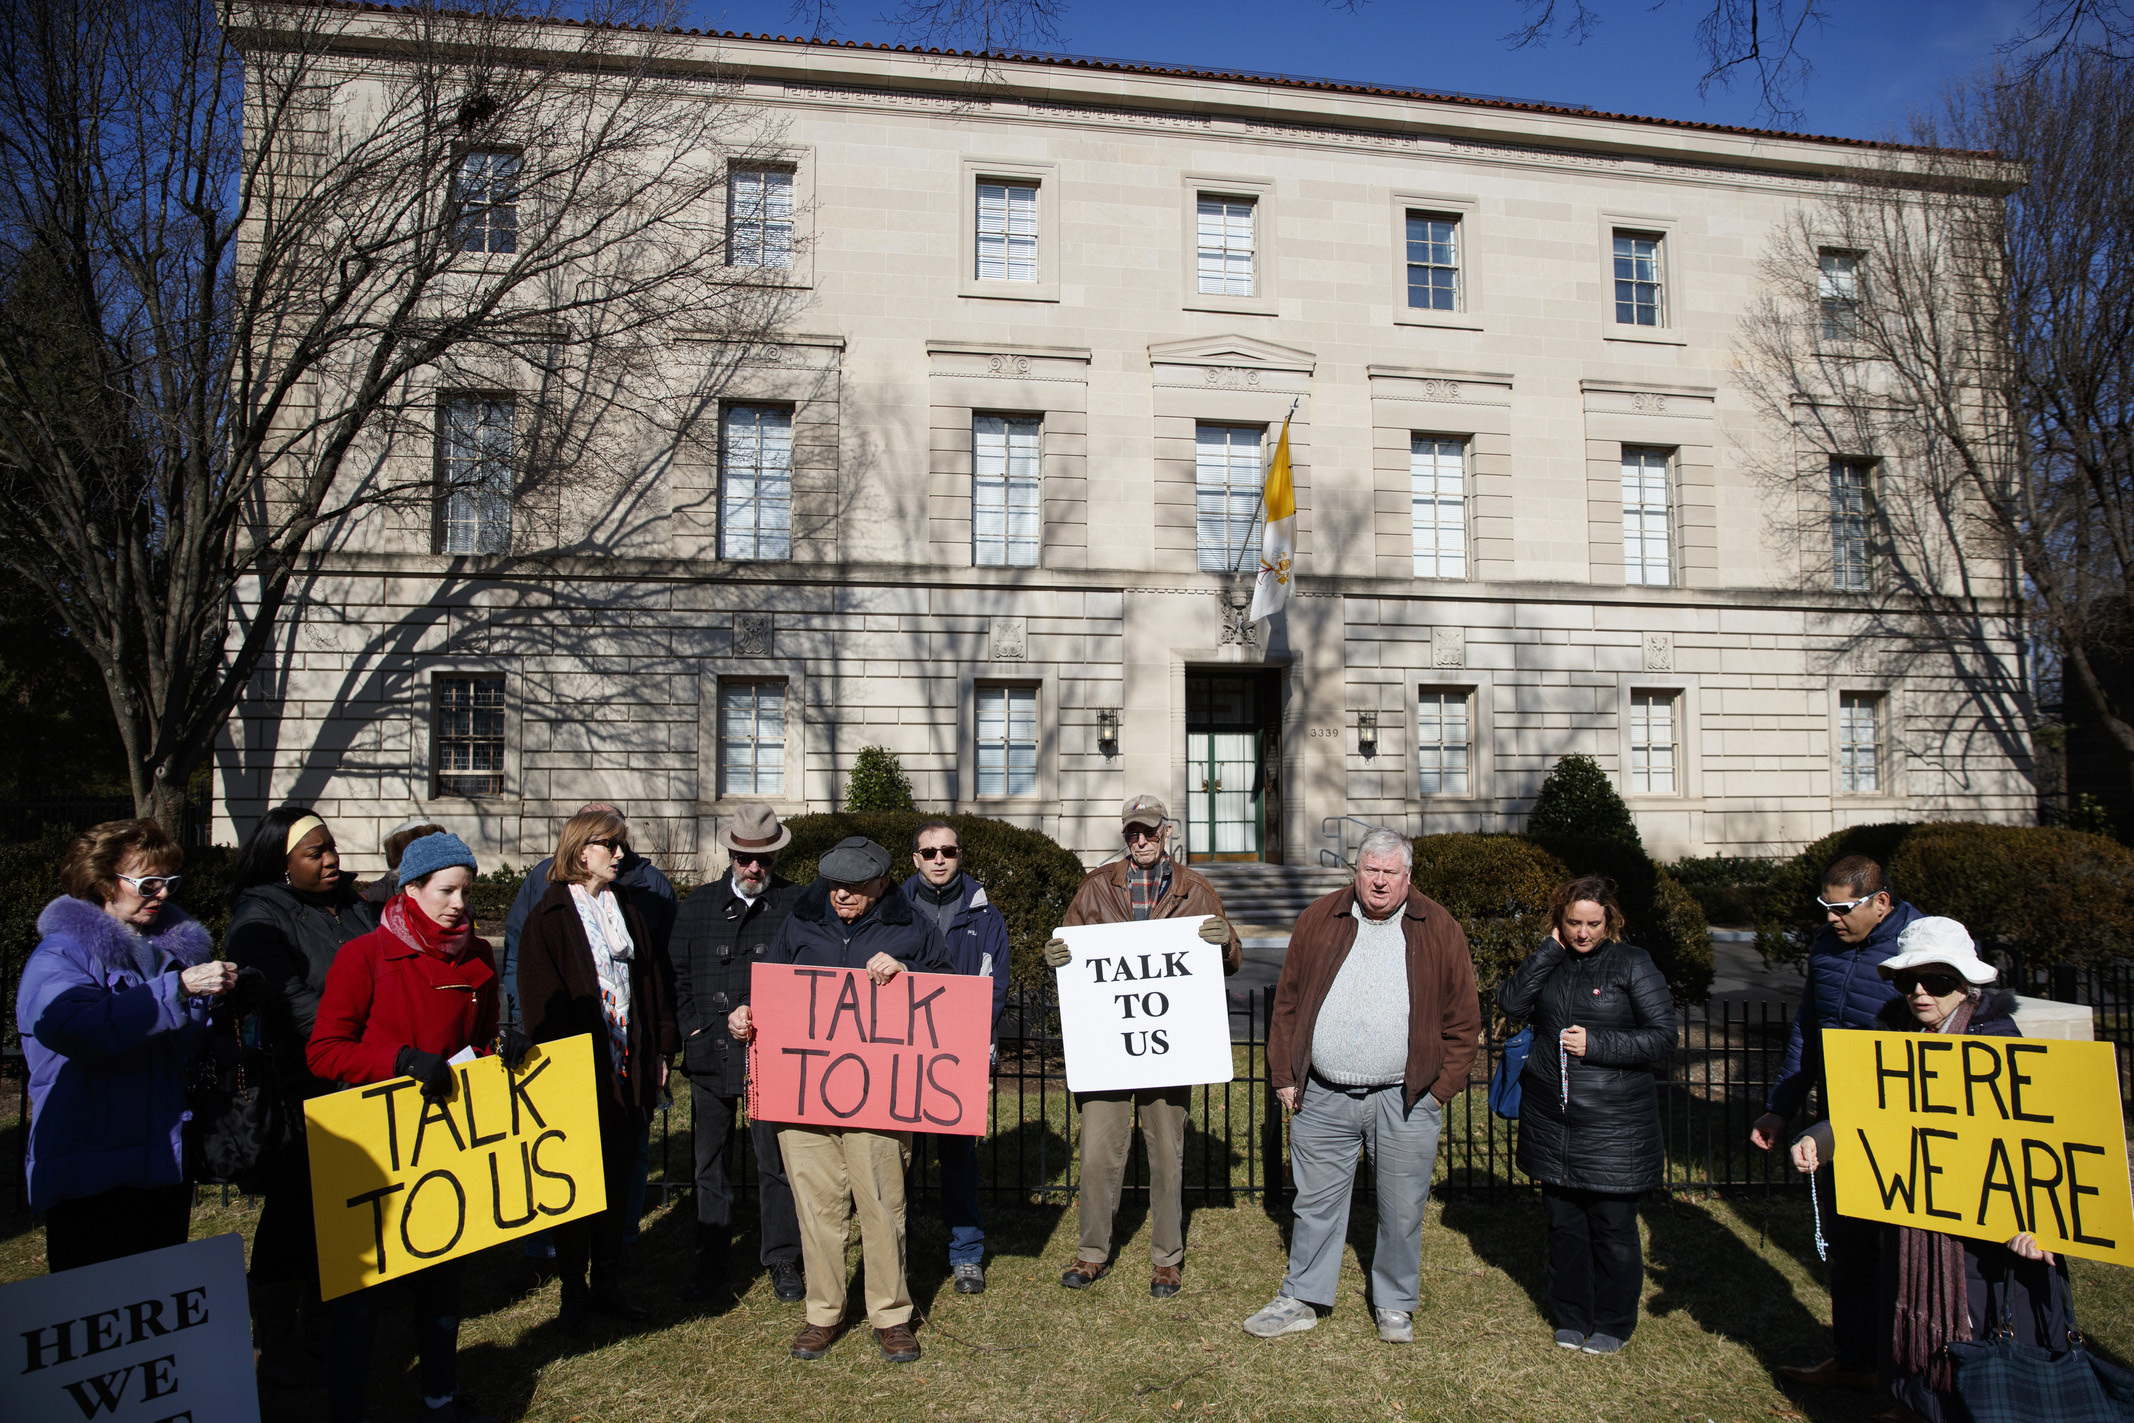 FILE - In this Feb. 16, 2019 file photo, a group with Catholic Laity for Orthodox Bishops and Reform gathers to pray the rosary outside the Apostolic Nunciature of the Holy See in Washington. Pope Francis' high-stakes sex abuse prevention summit is meant to call attention to the crisis as a global problem that requires a global response. After the abuse scandal erupted in Boston in 2002, U.S. bishops adopted the toughest anti-abuse norms in the Catholic Church, a